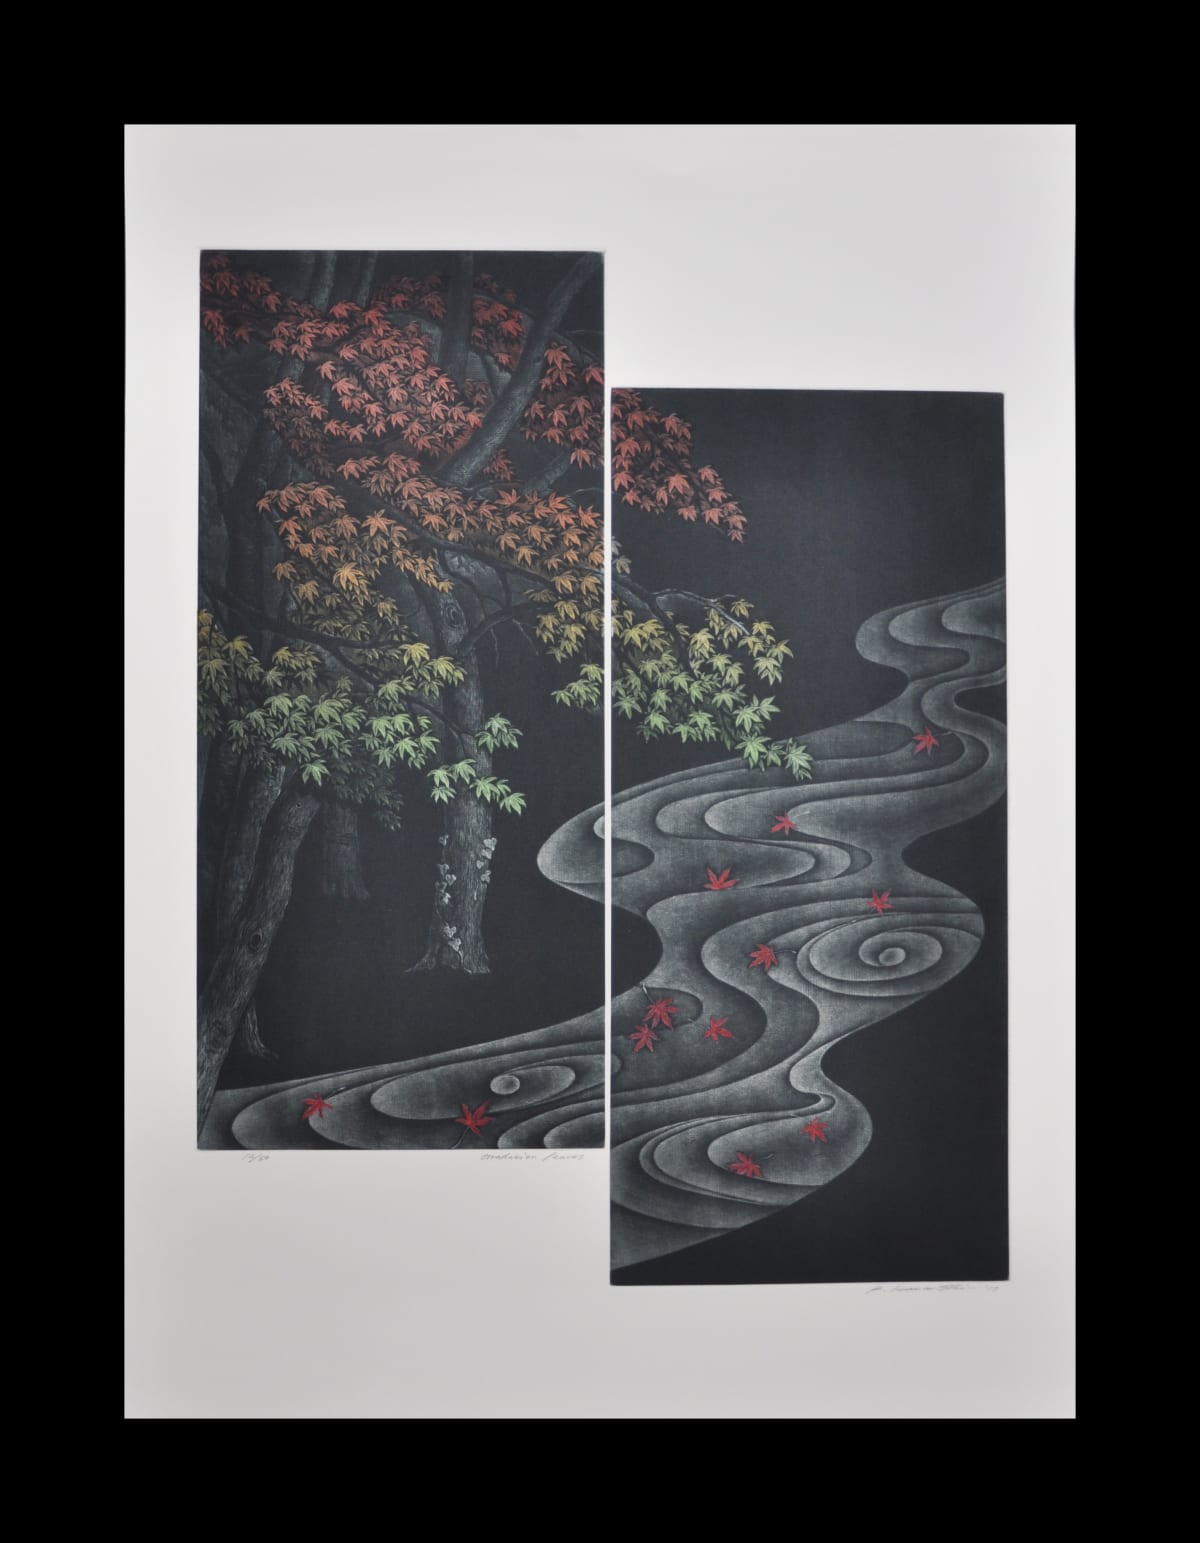 Katsunori Hamanishi Gradation Leaves, 2019 Mezzotint 58 x 45 cm image size Edition of 50